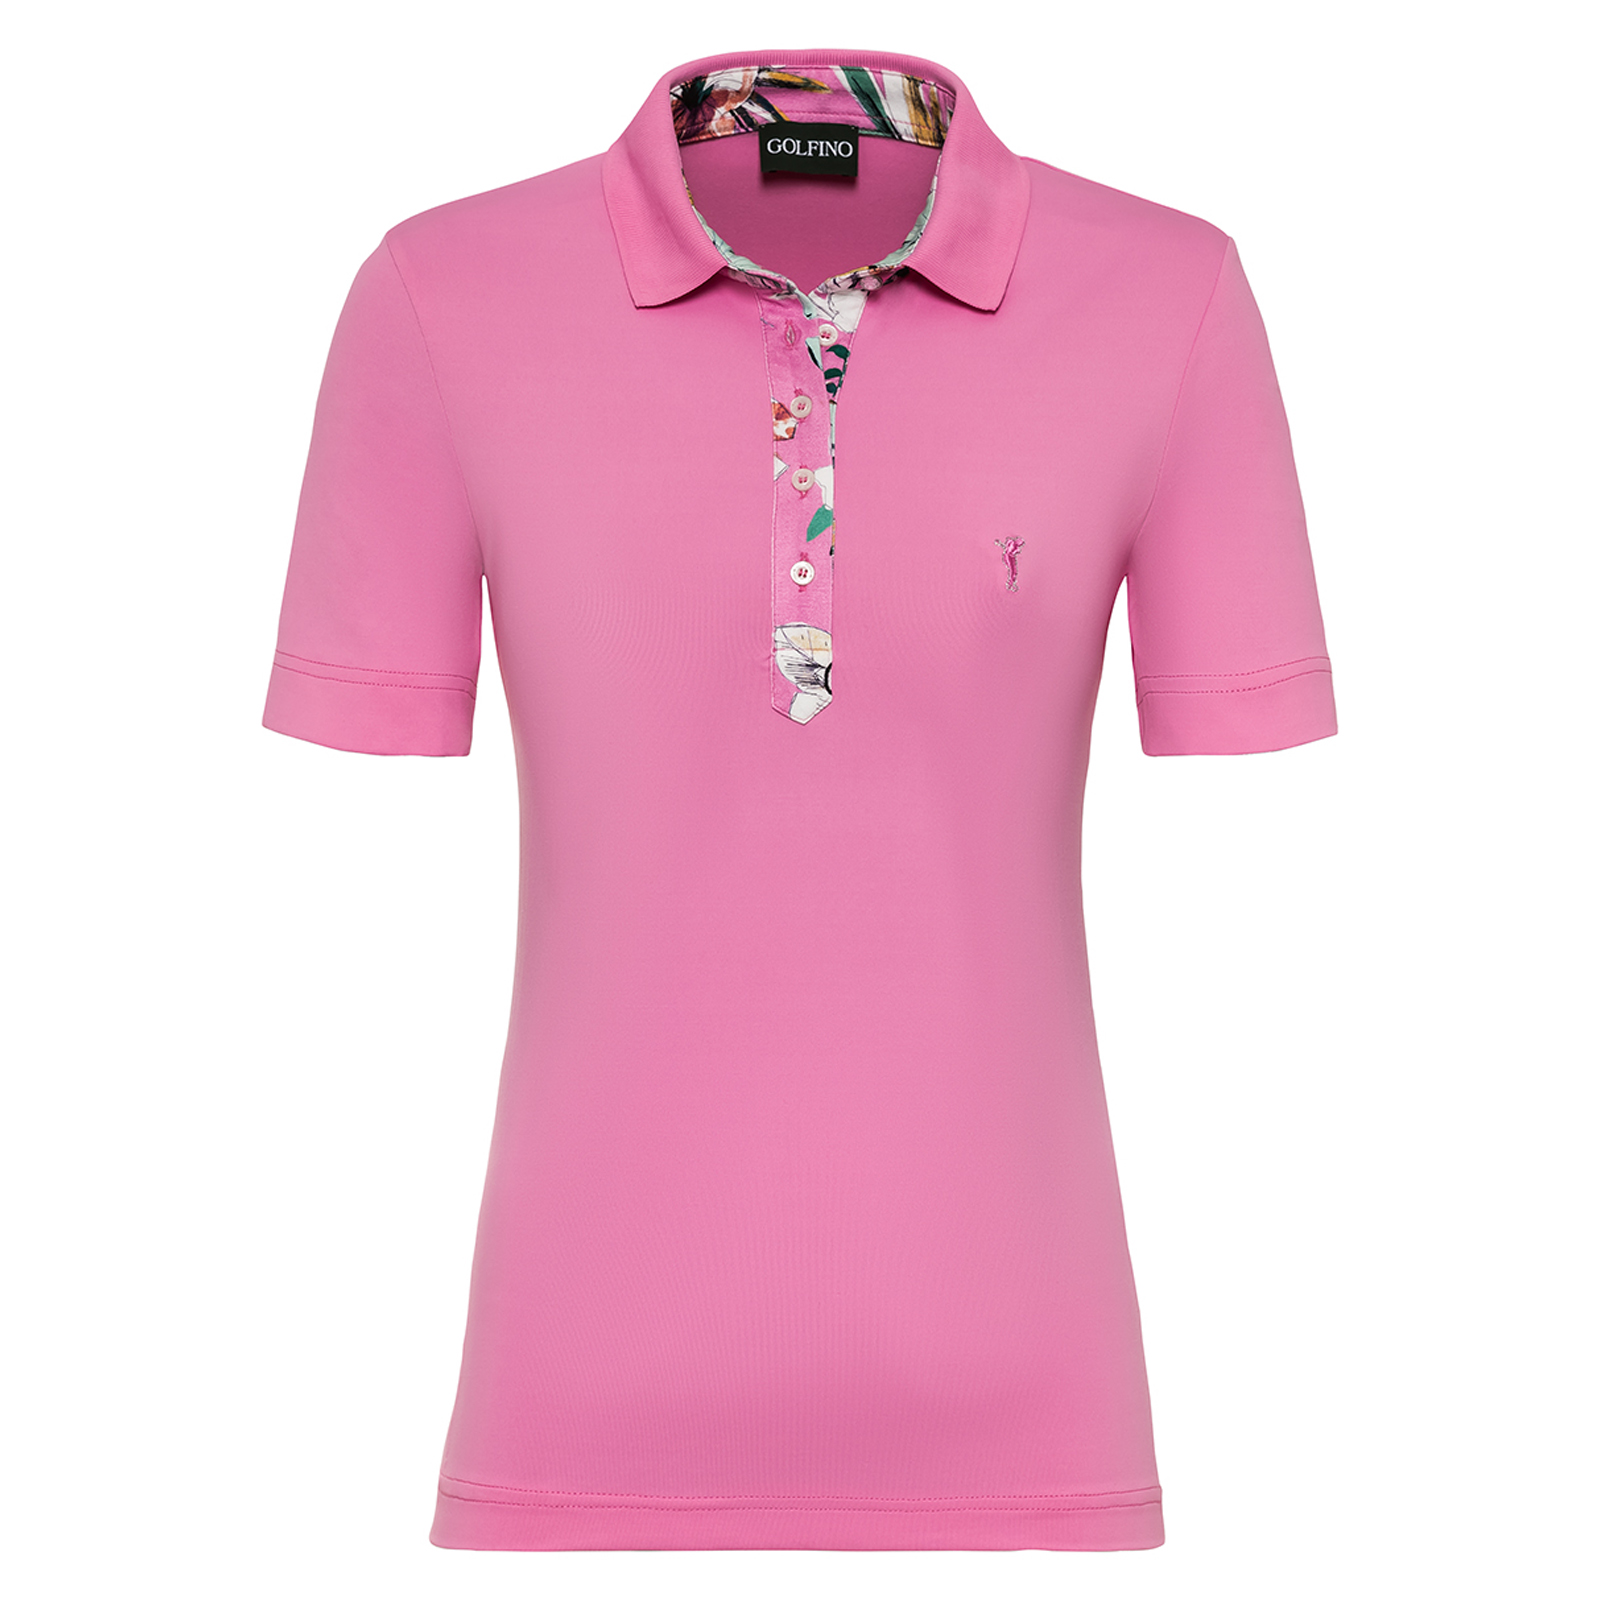 Kurzärmeliges Damen Golf-Polo mit DryComfort-Funktion